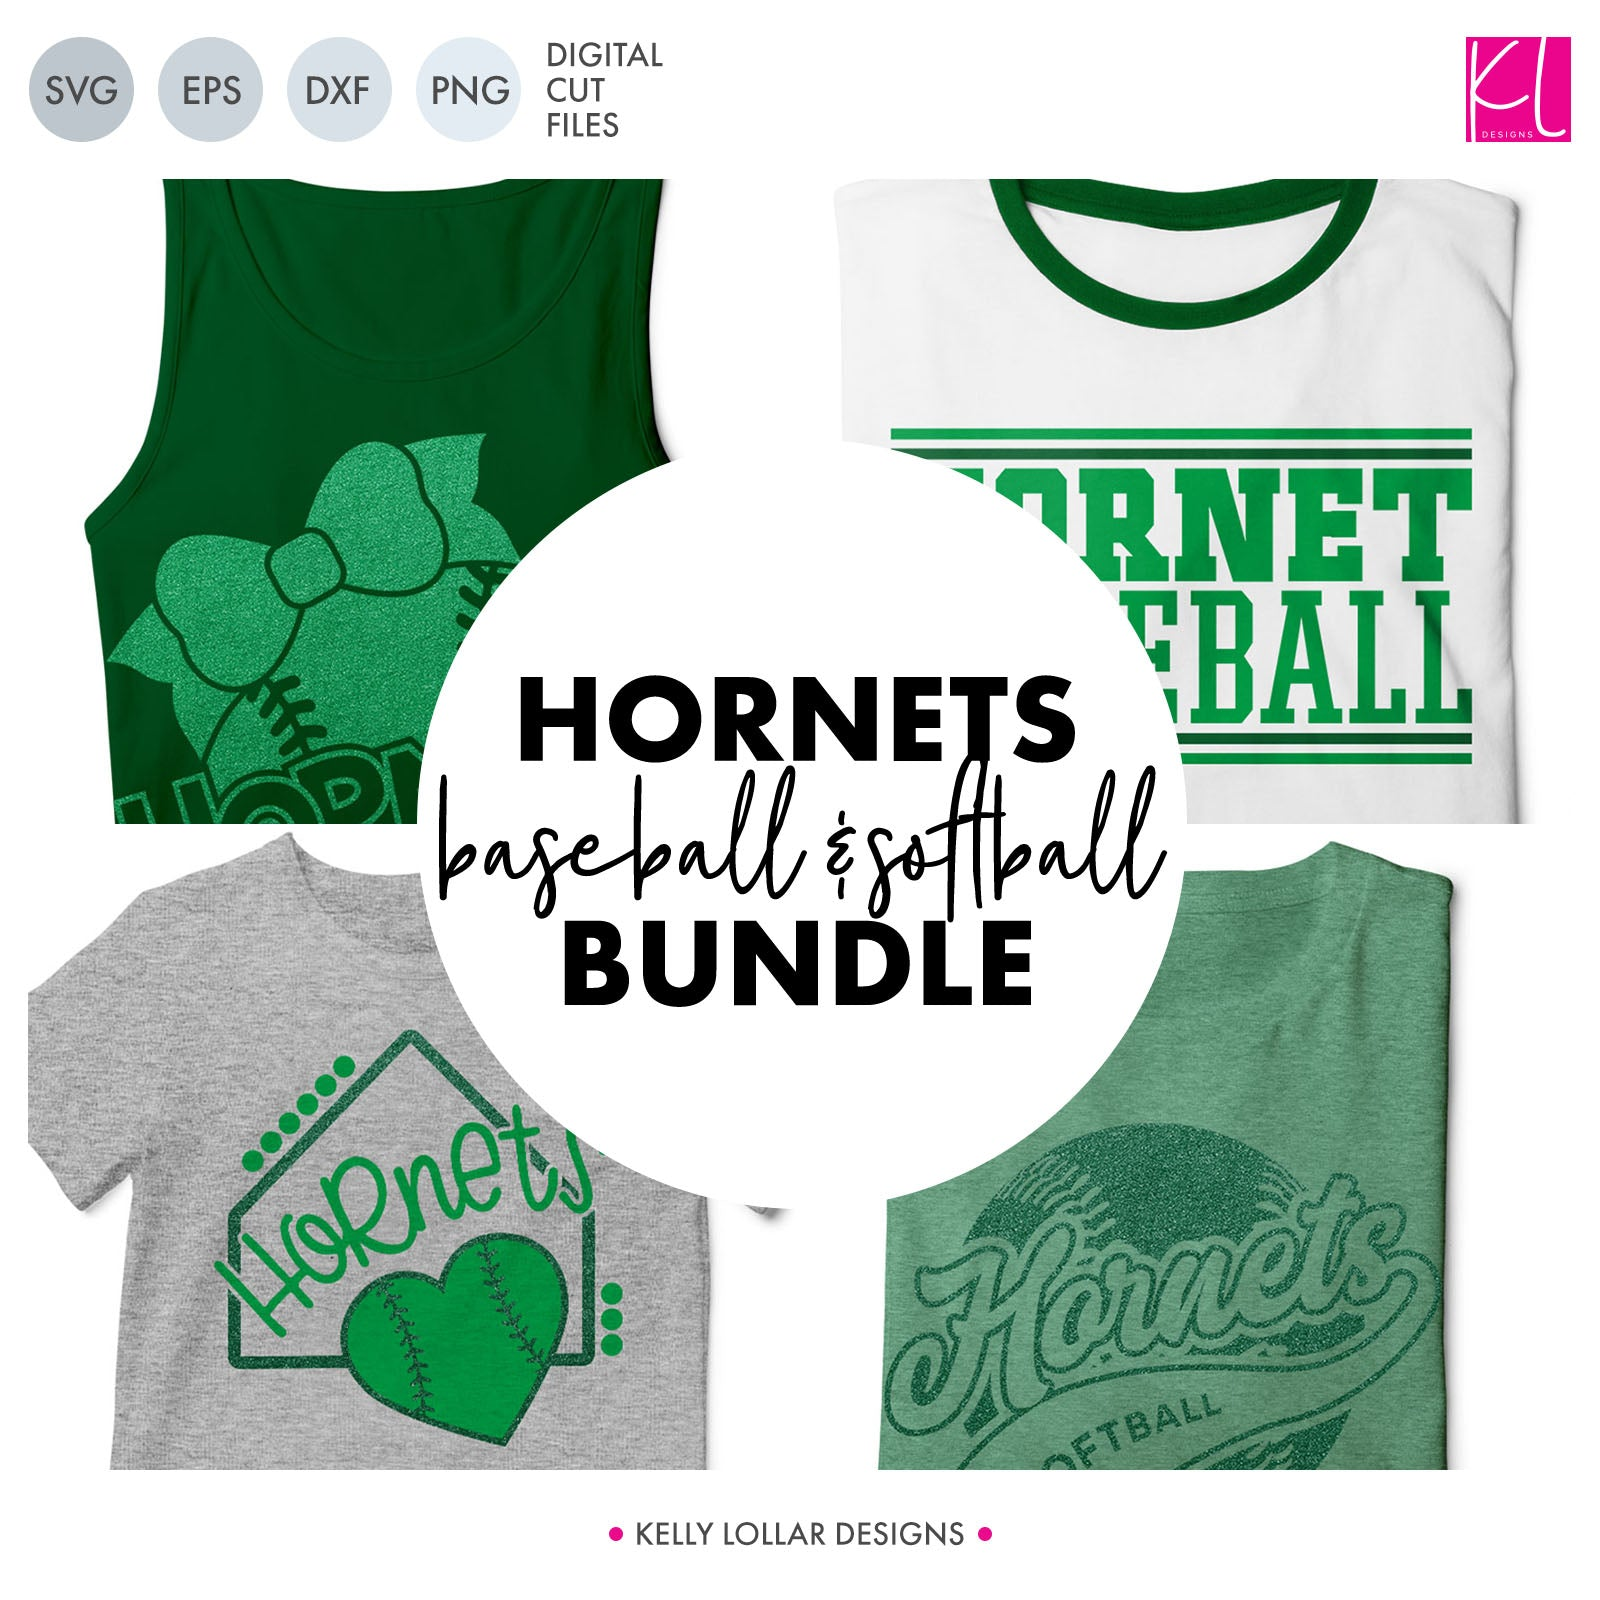 Hornets Baseball & Softball Bundle | SVG DXF EPS PNG Cut Files